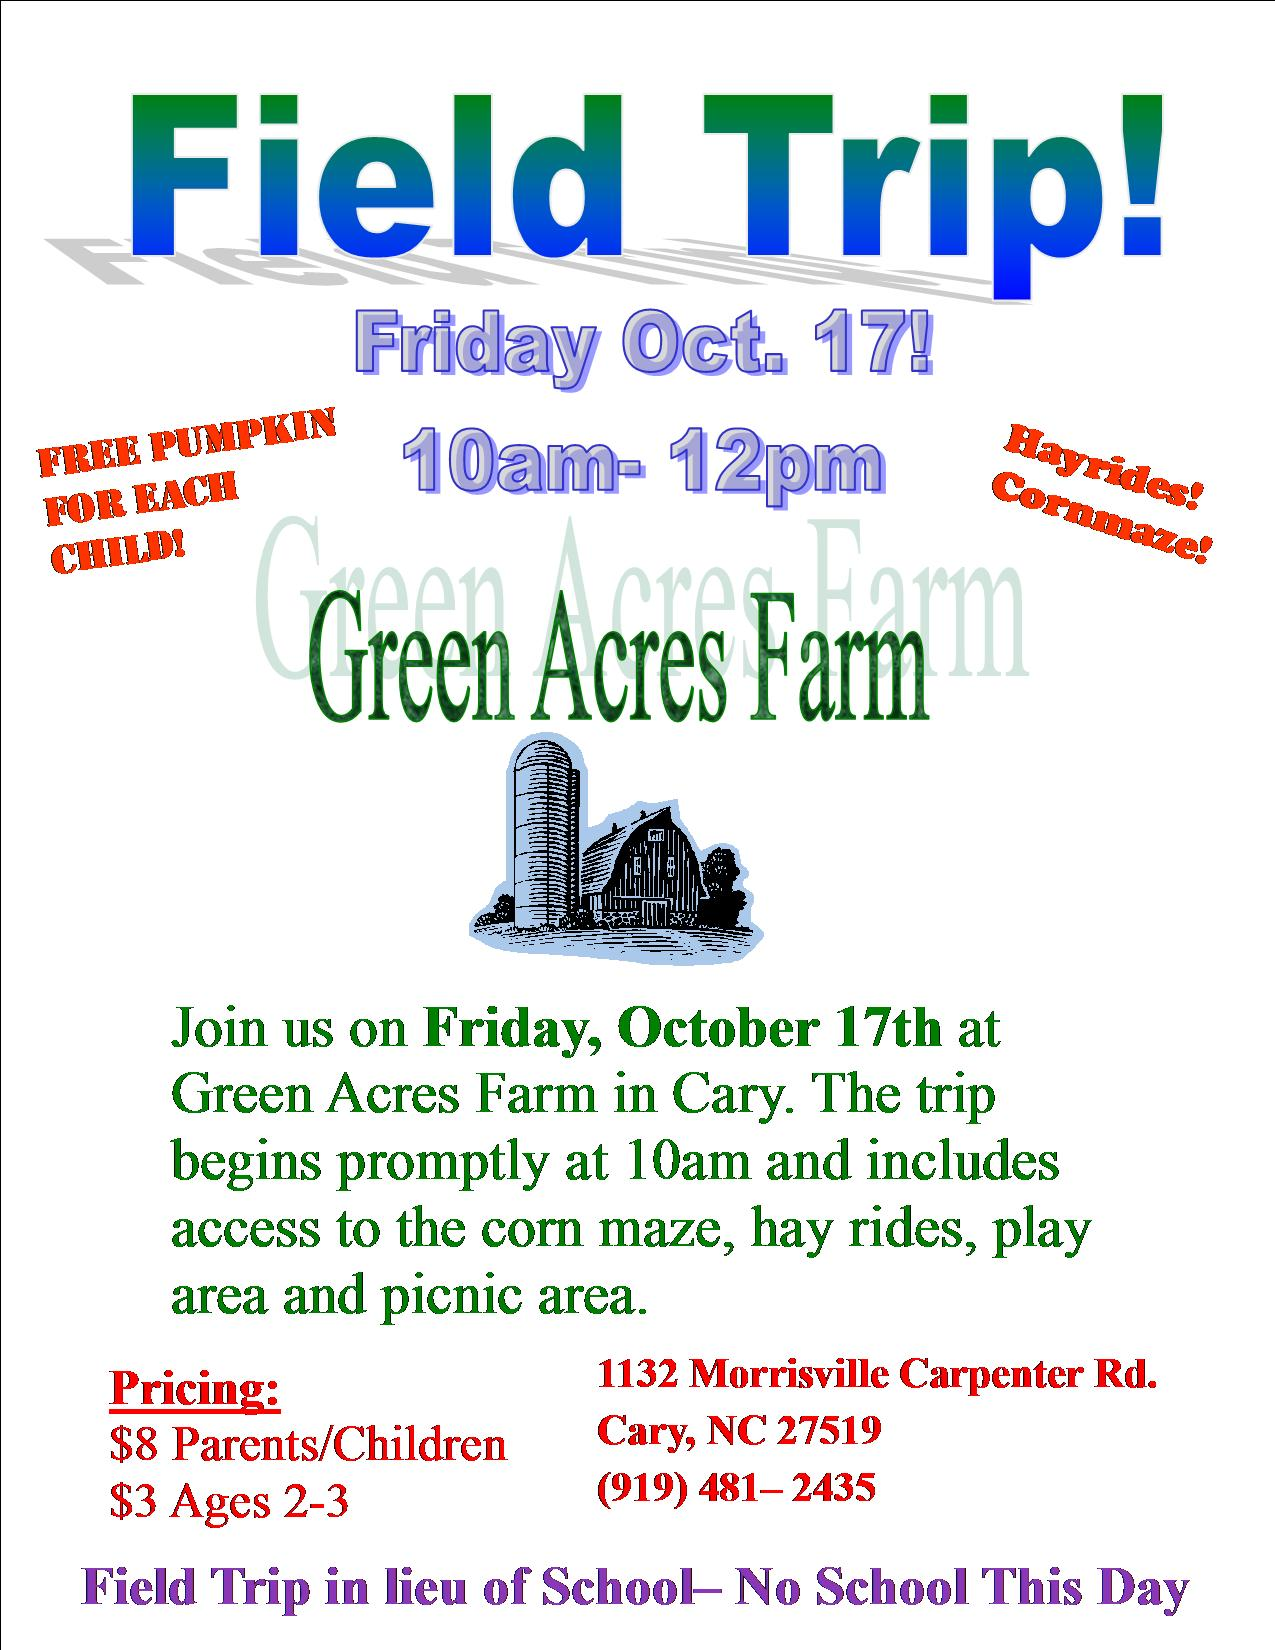 Free field trip flyer template free poster templates pageprodigy.